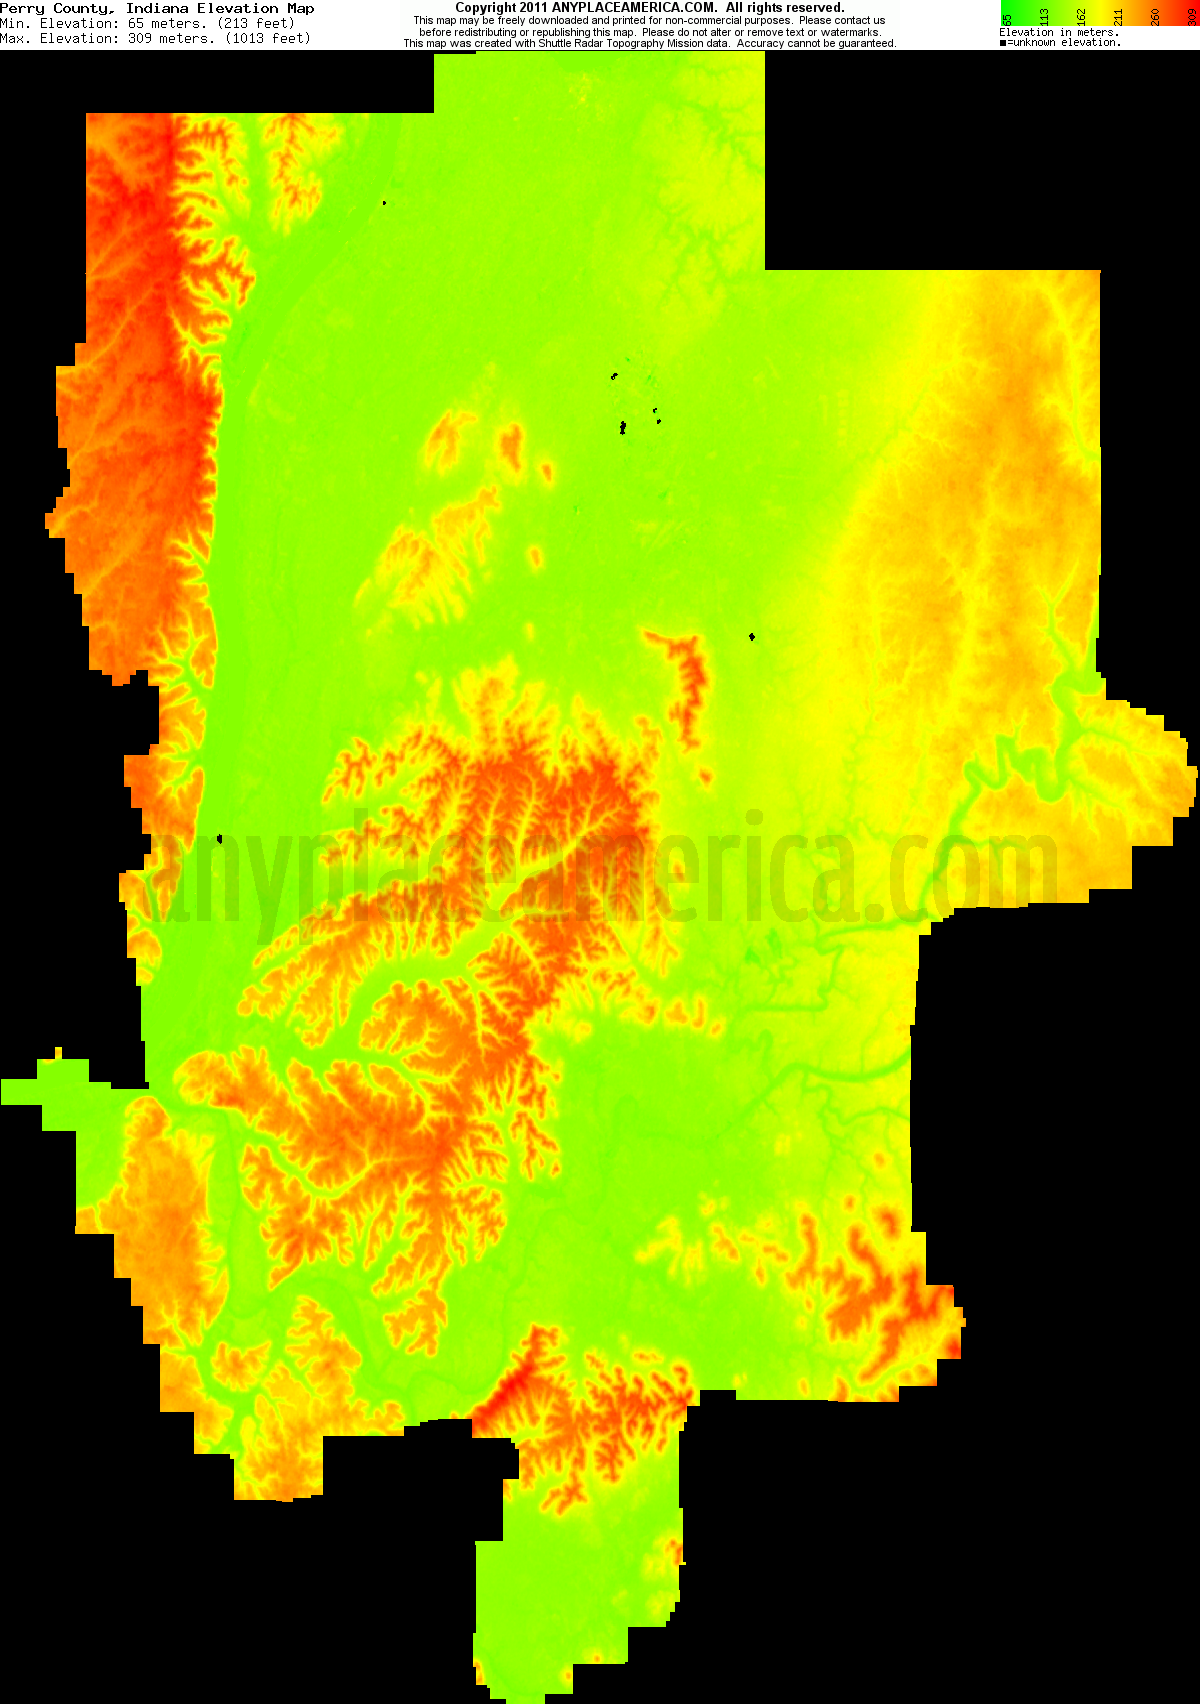 Indiana perry county bristow - Download Perry County Elevation Map